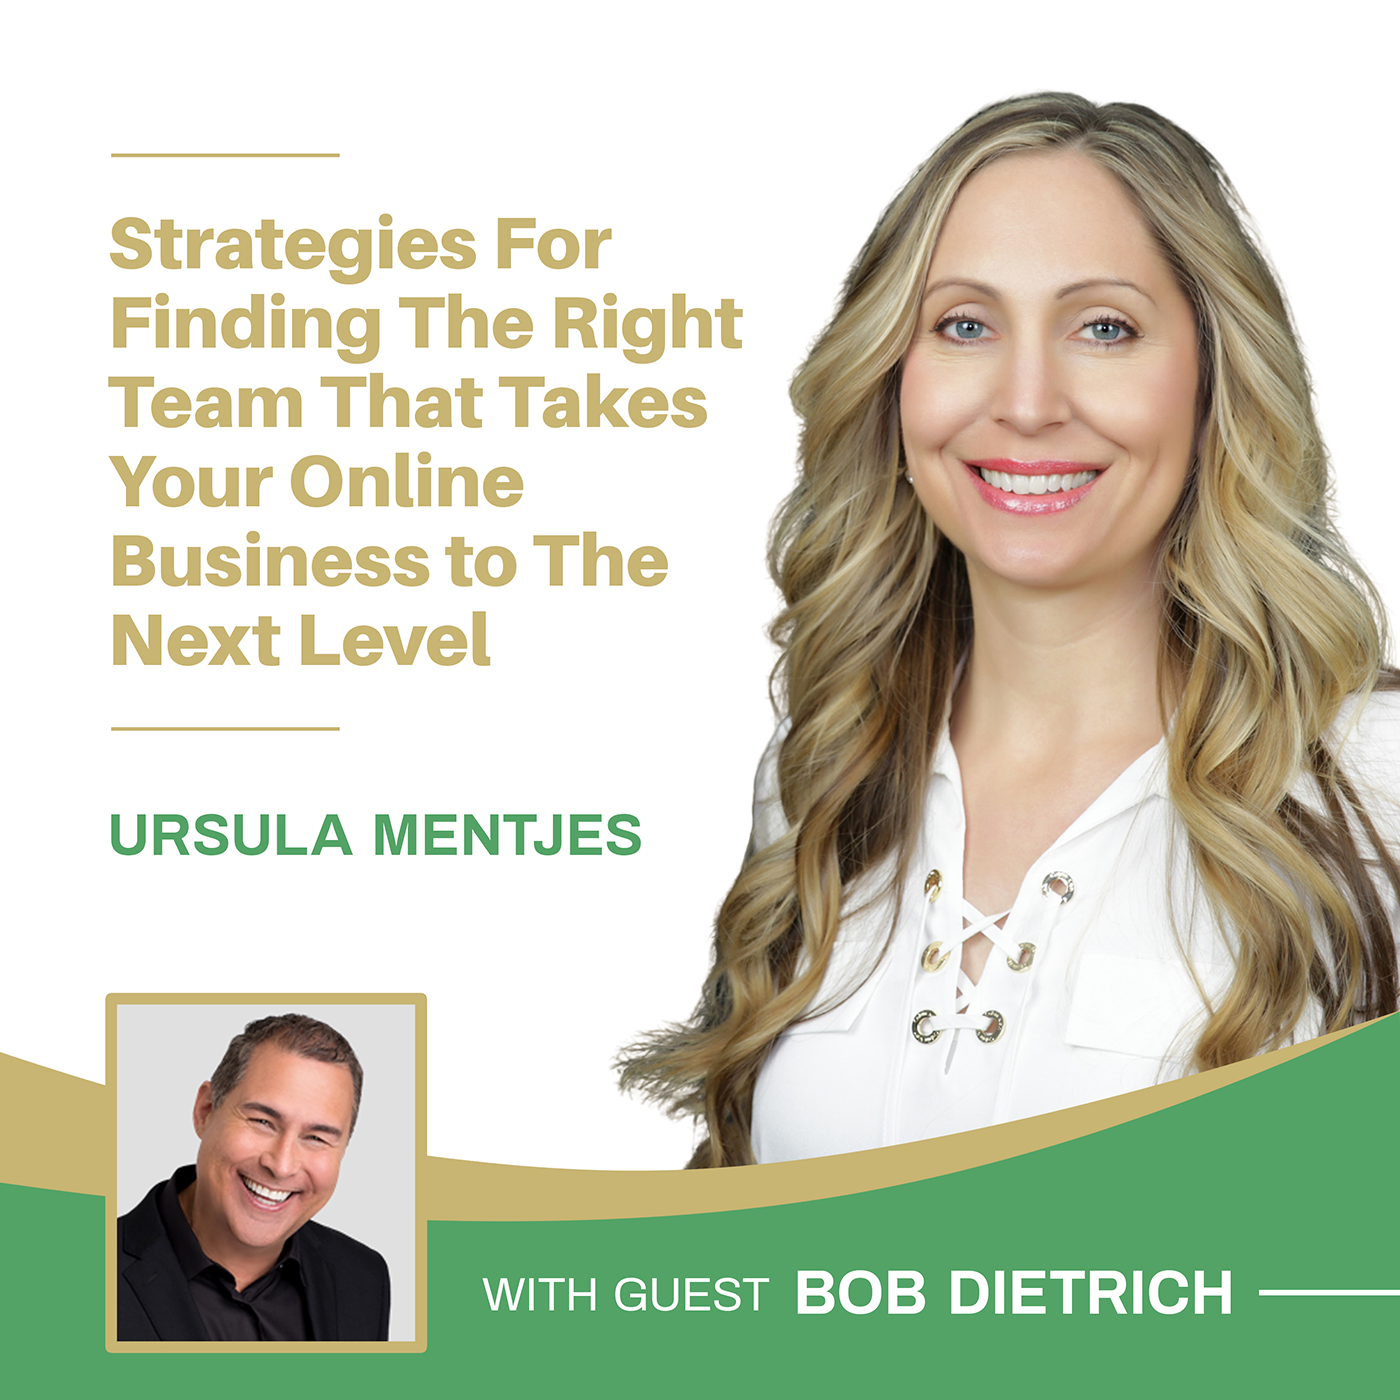 EP147: Strategies For Finding The Right Team That Takes Your Online Business to The Next Level with Bob Dietrich